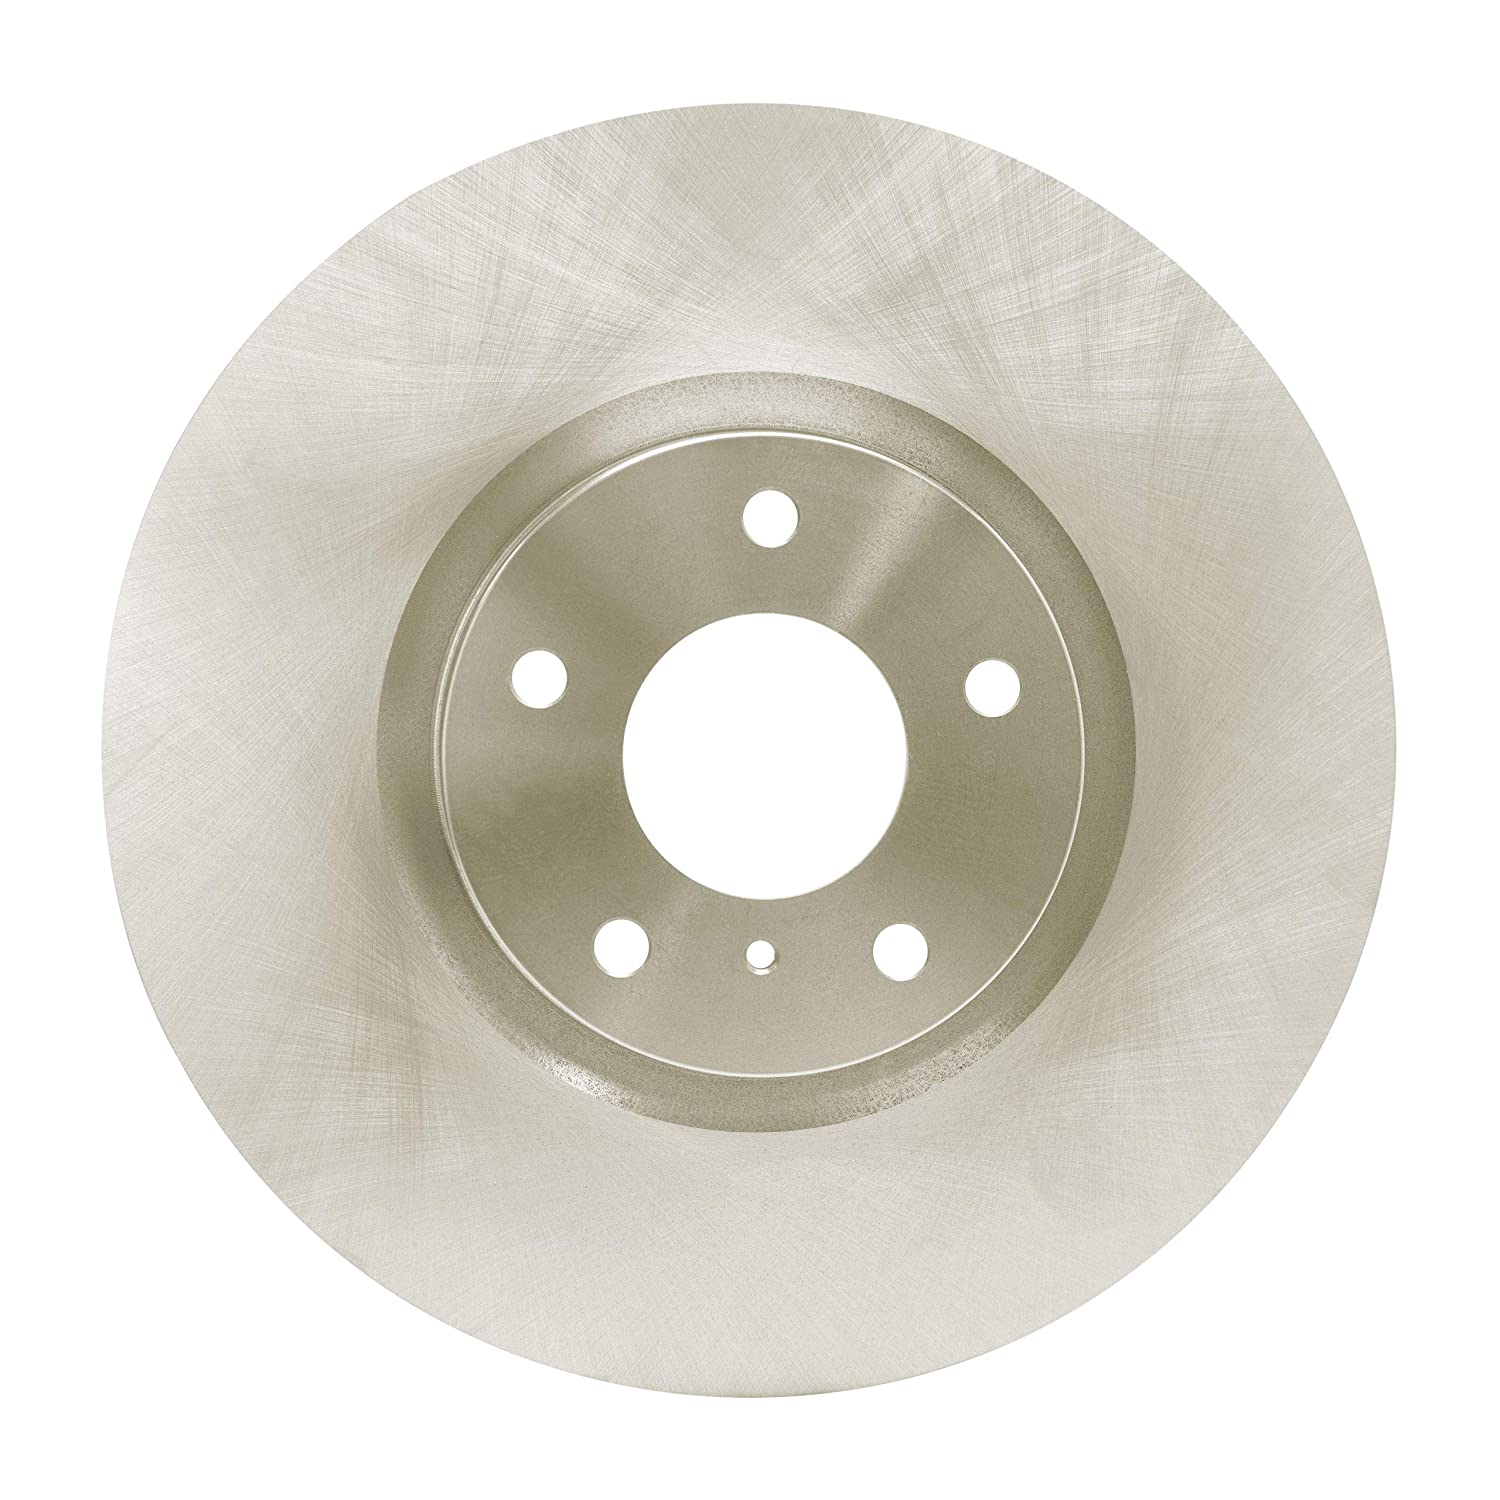 1 Front Dynamic Friction Company Disc Brake Rotor 600-02000